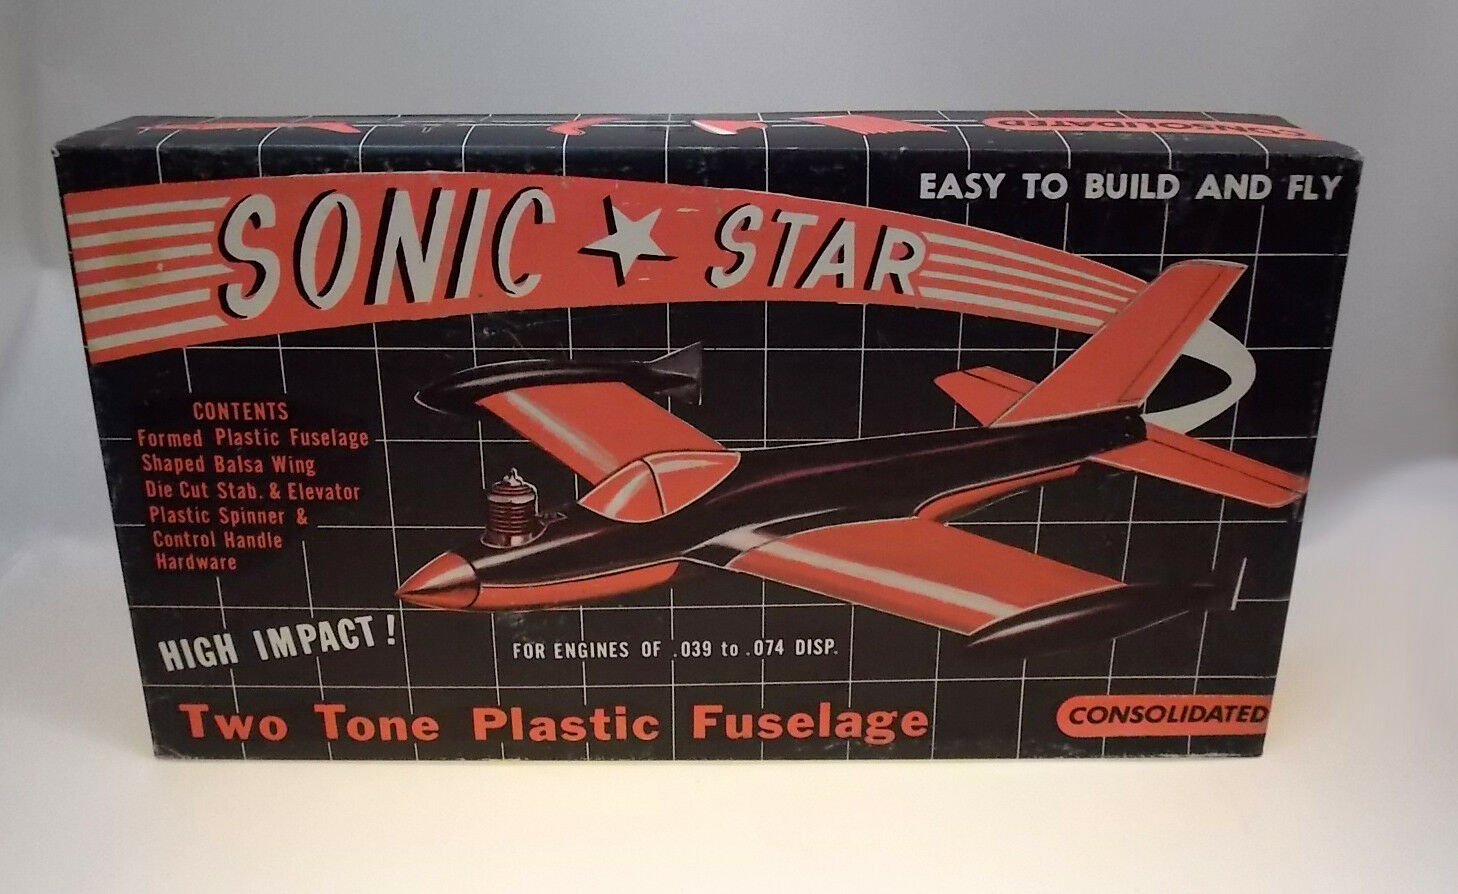 VINTAGE CONSOLIDATED SONIC STAR CONTROL LINE  MODEL AIRPLANE KIT